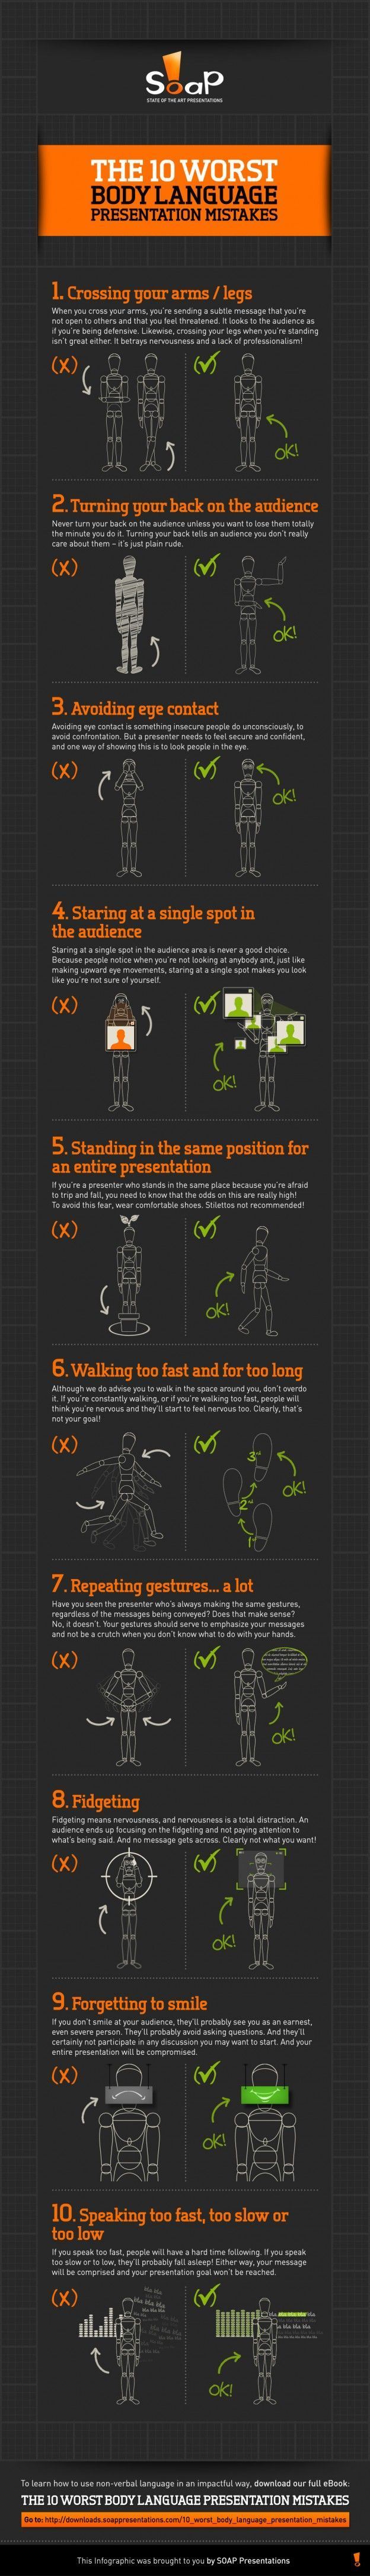 Make sure your body language isn't hurting you in an interview!